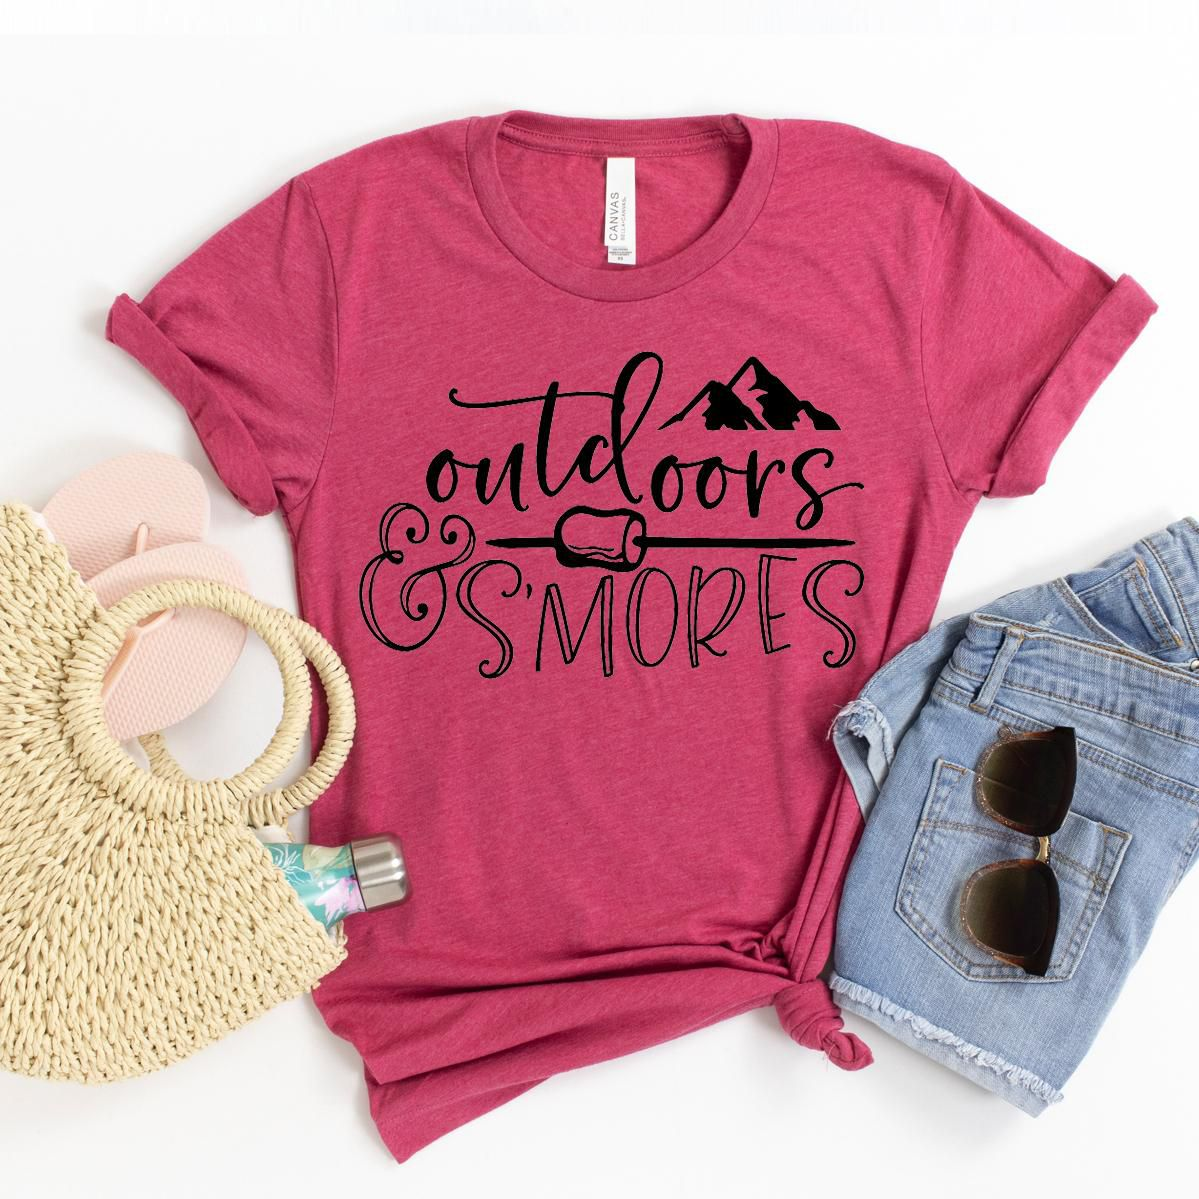 Outdoors And Smores T-shirt, Camper Tee, Wanderlust Gift, Hiking Shirt, Hike More Worry Less Tshirt, Adventure Shirts, Size X-Large